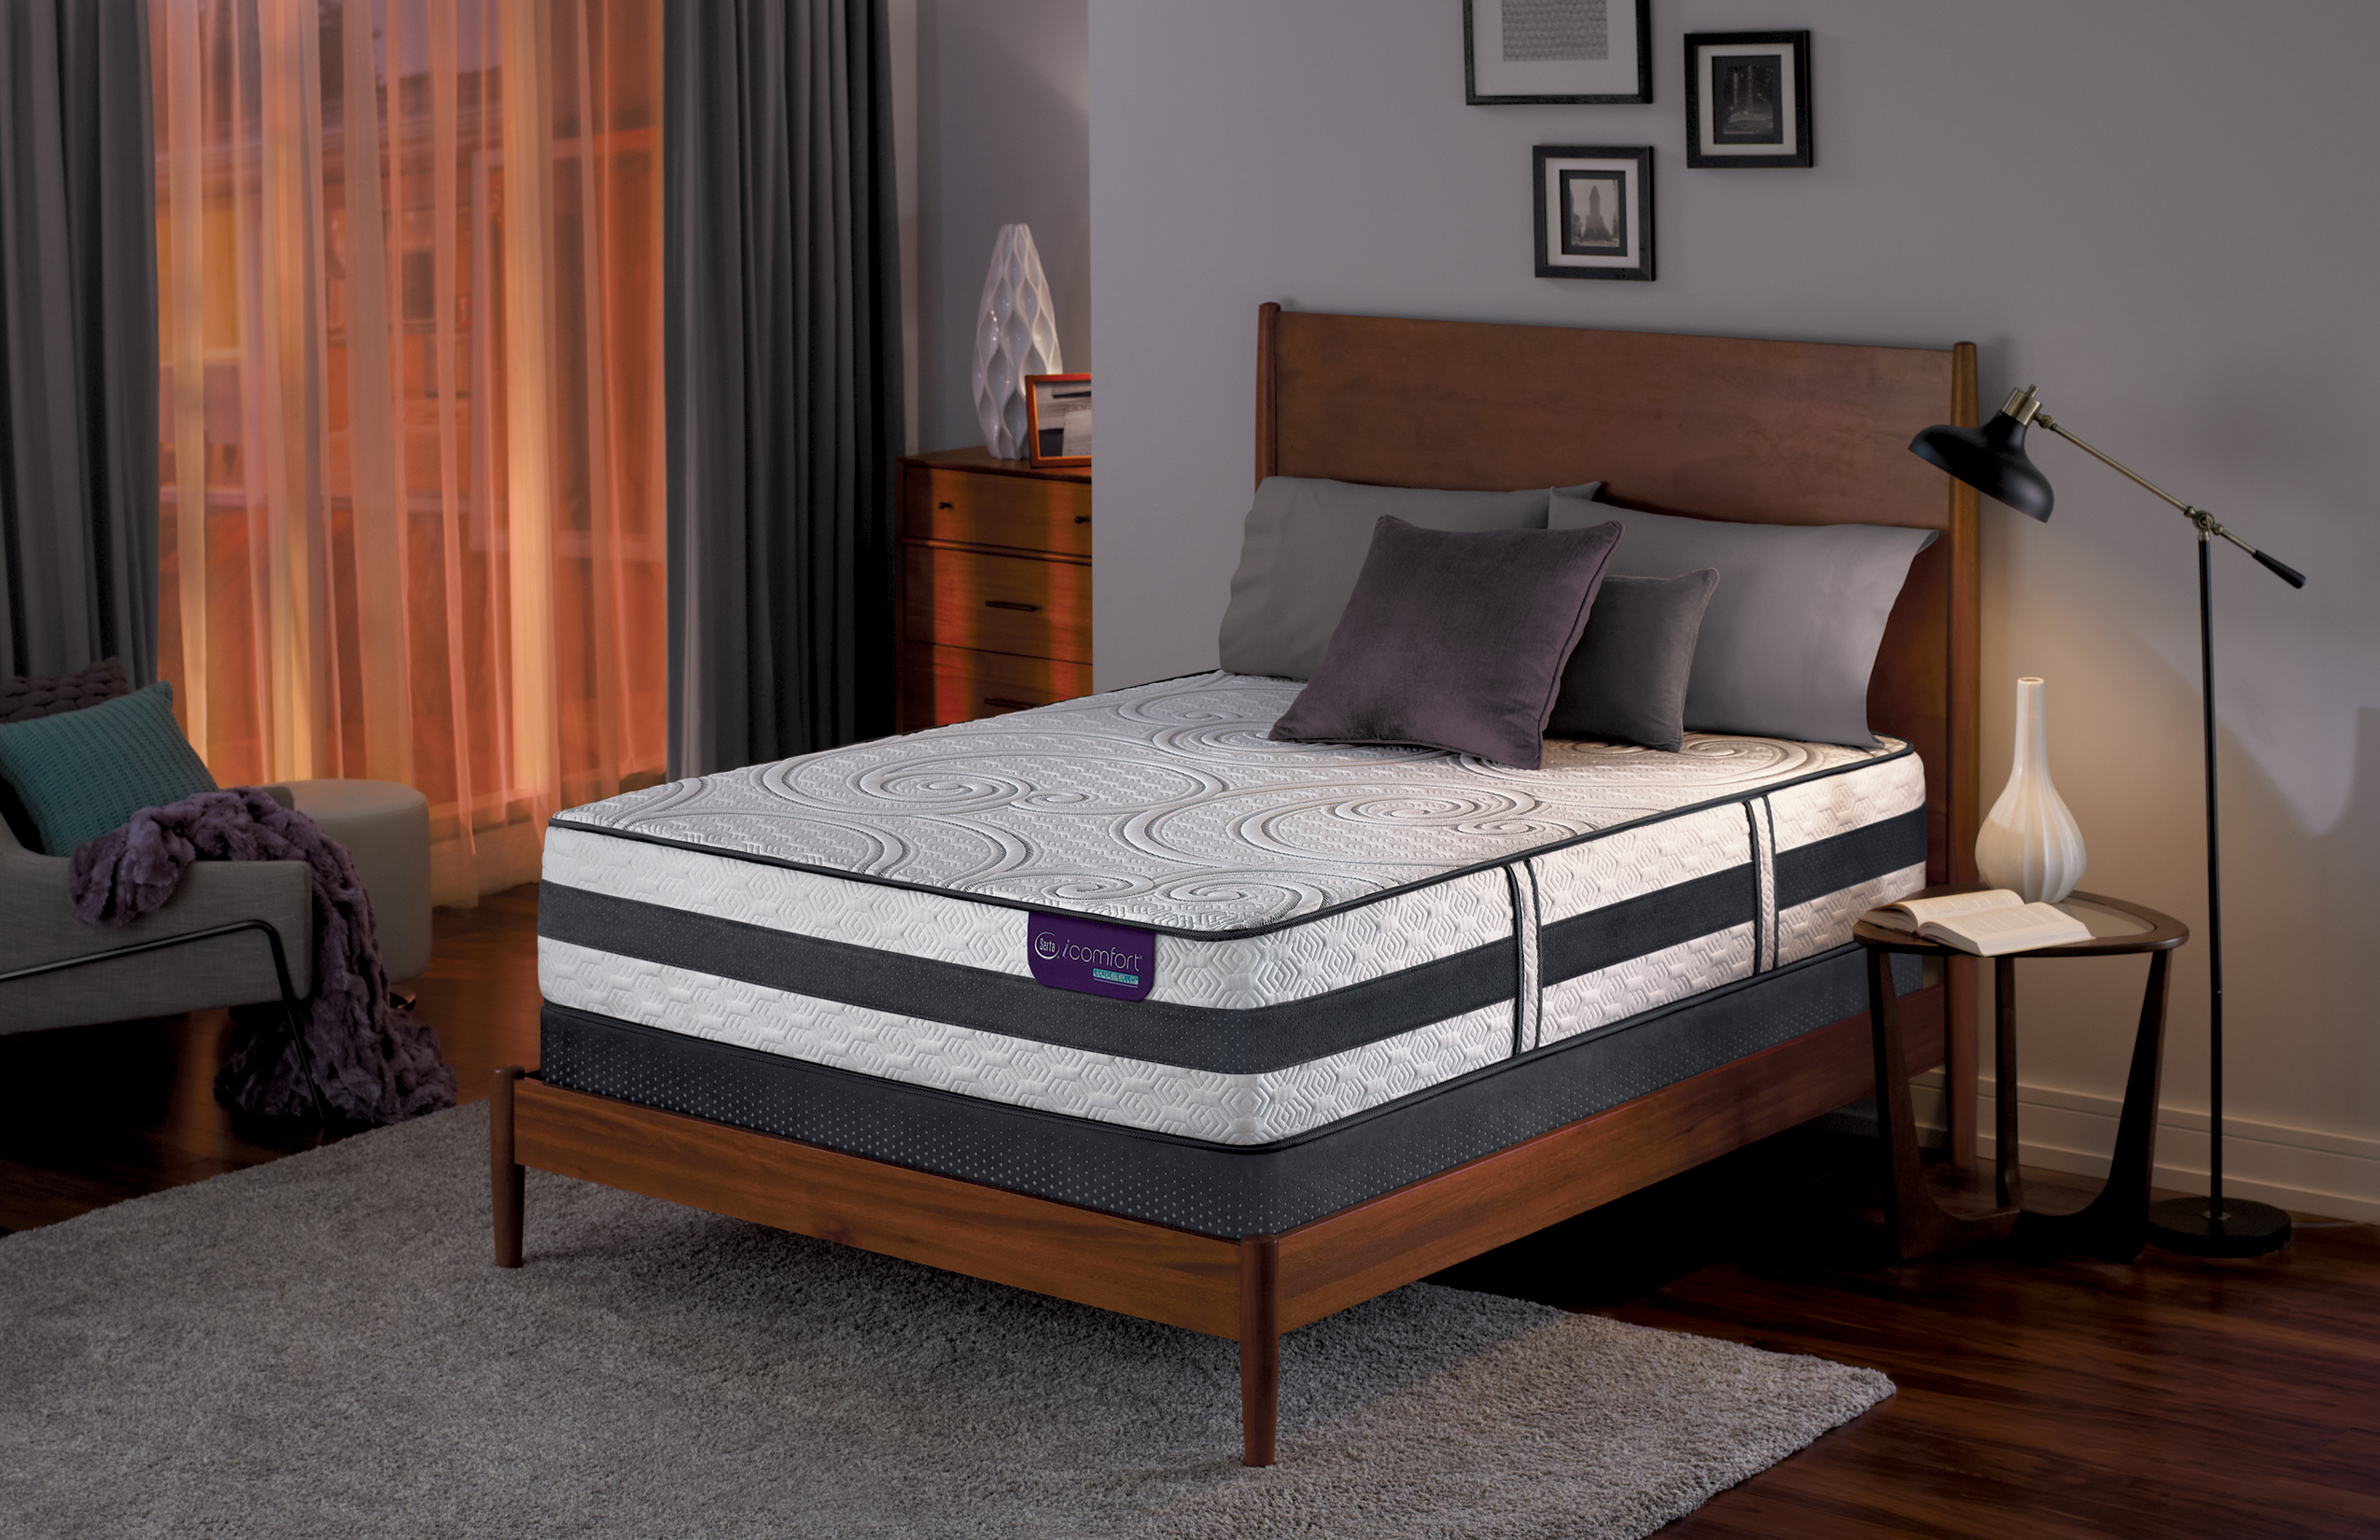 Serta   Mattress Reviews   GoodBed.com Nice Ideas